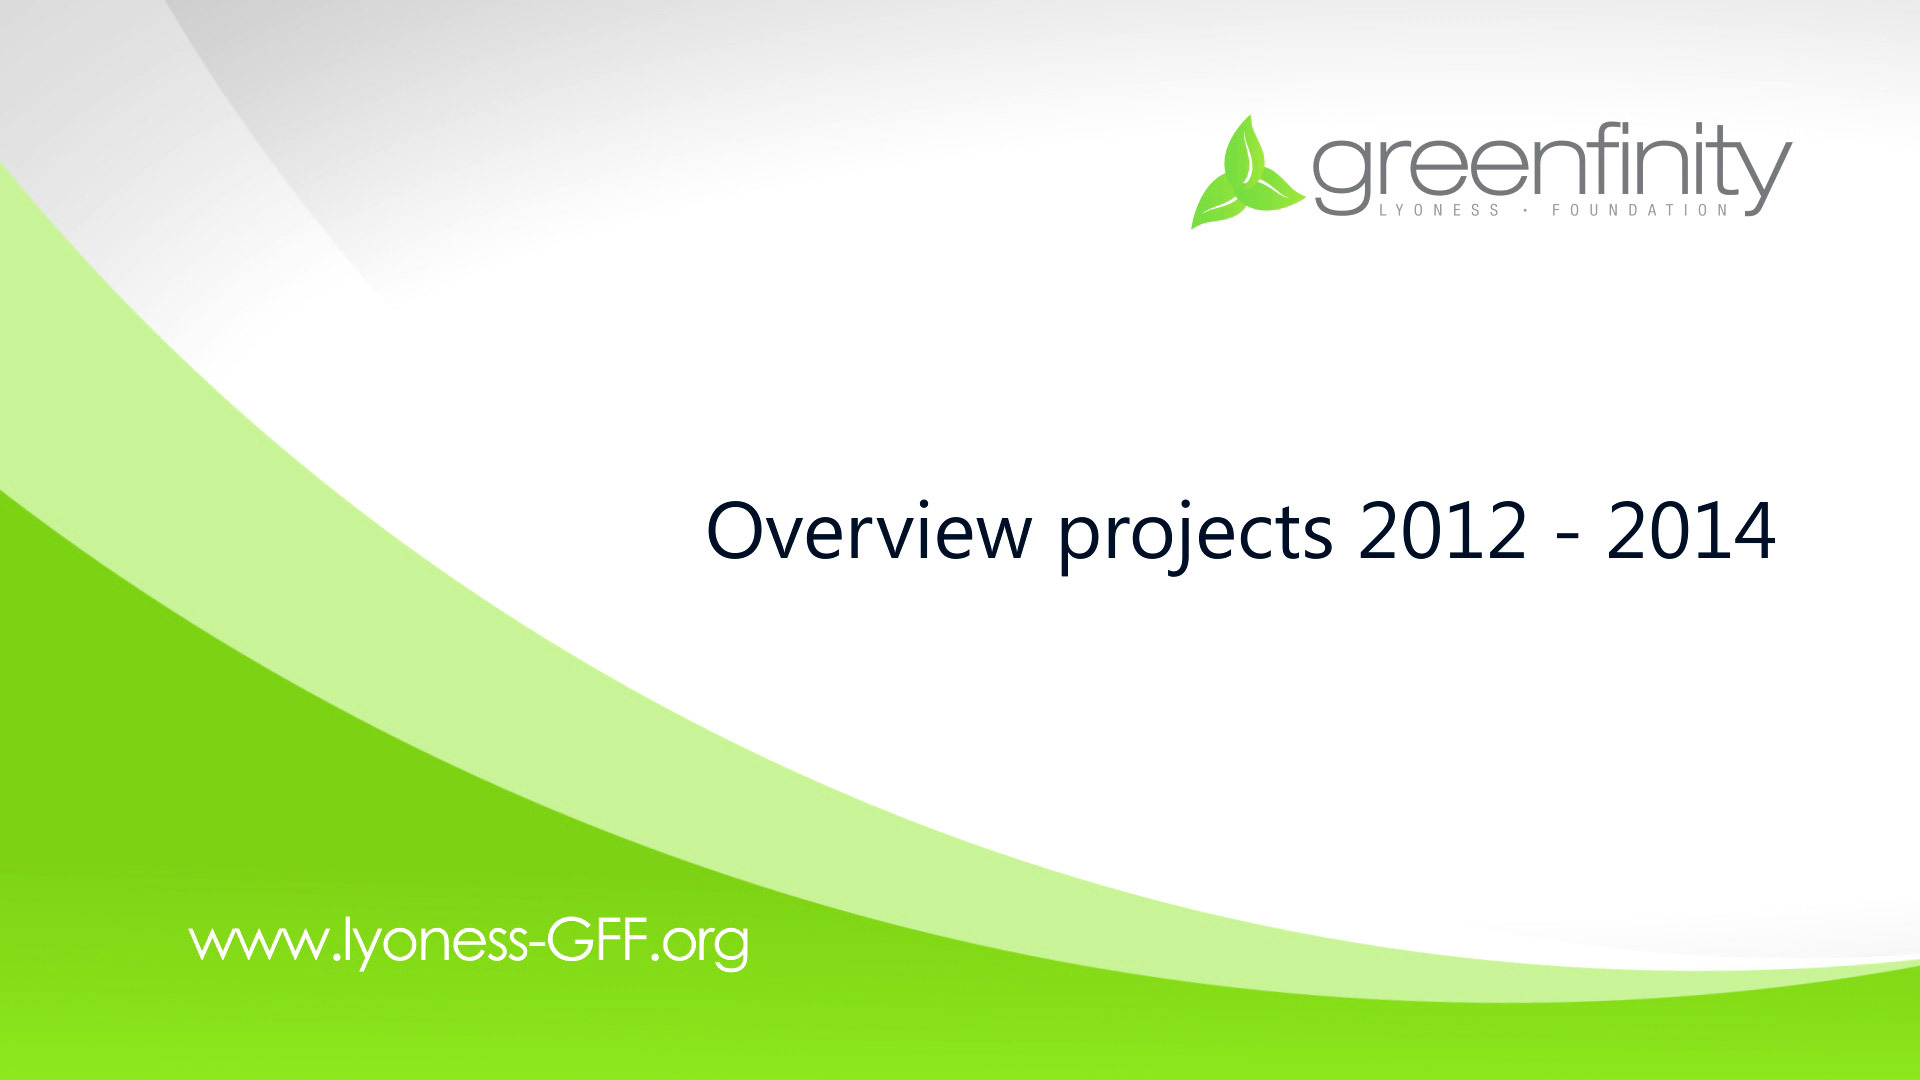 Greenfinity Foundation - Overview projects 2012 - 2014